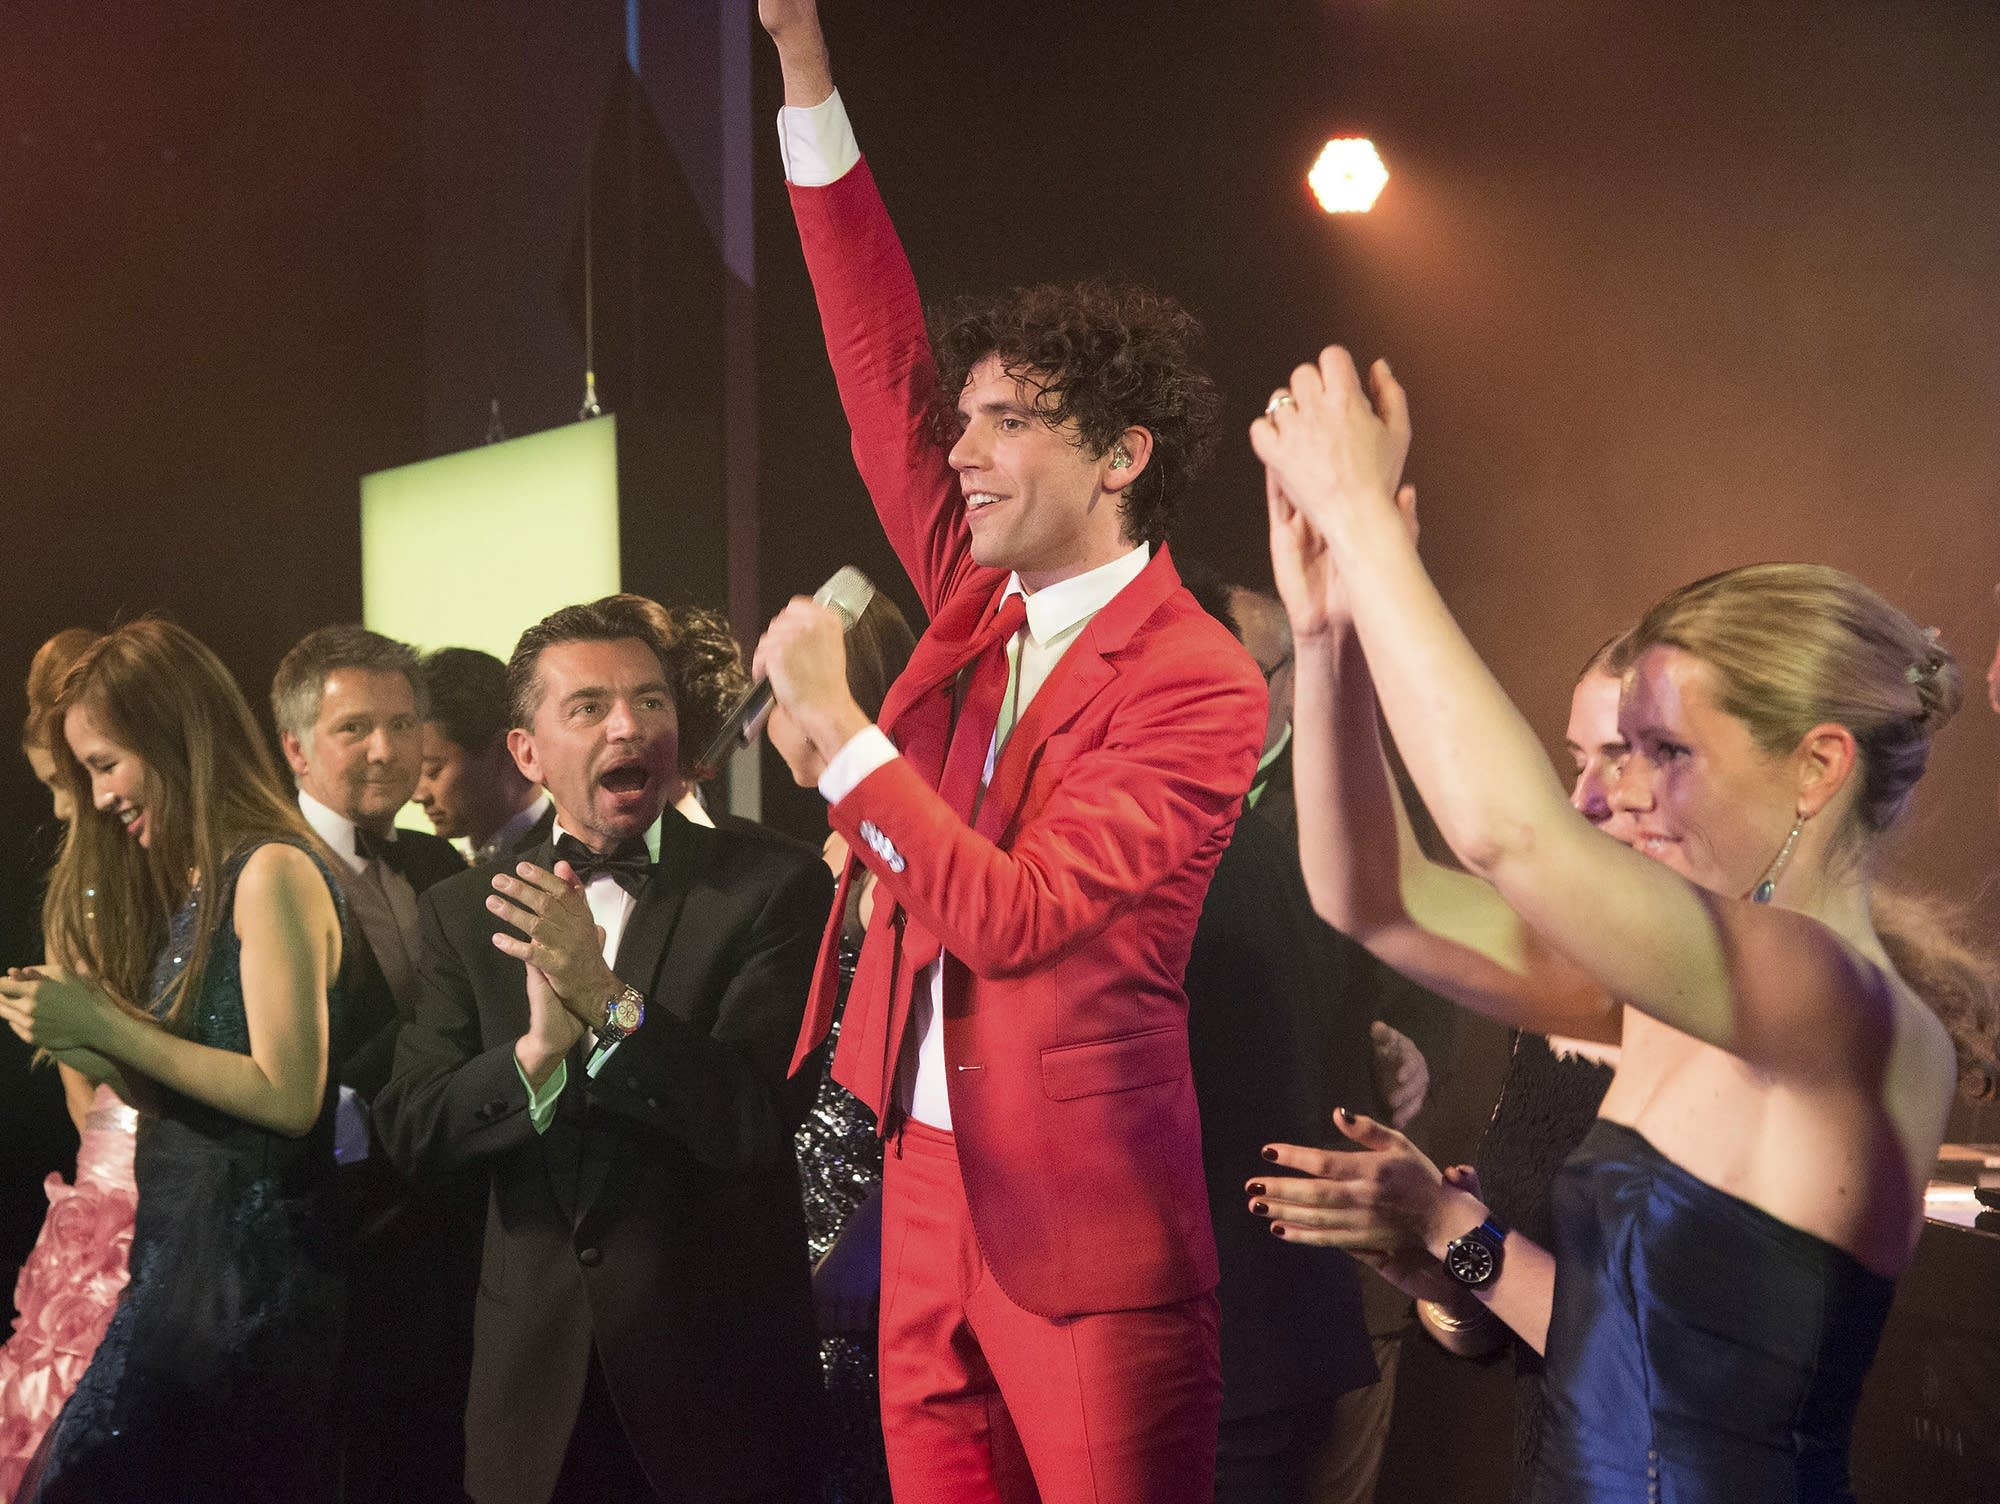 Mika performs for the Rose Ball 2014